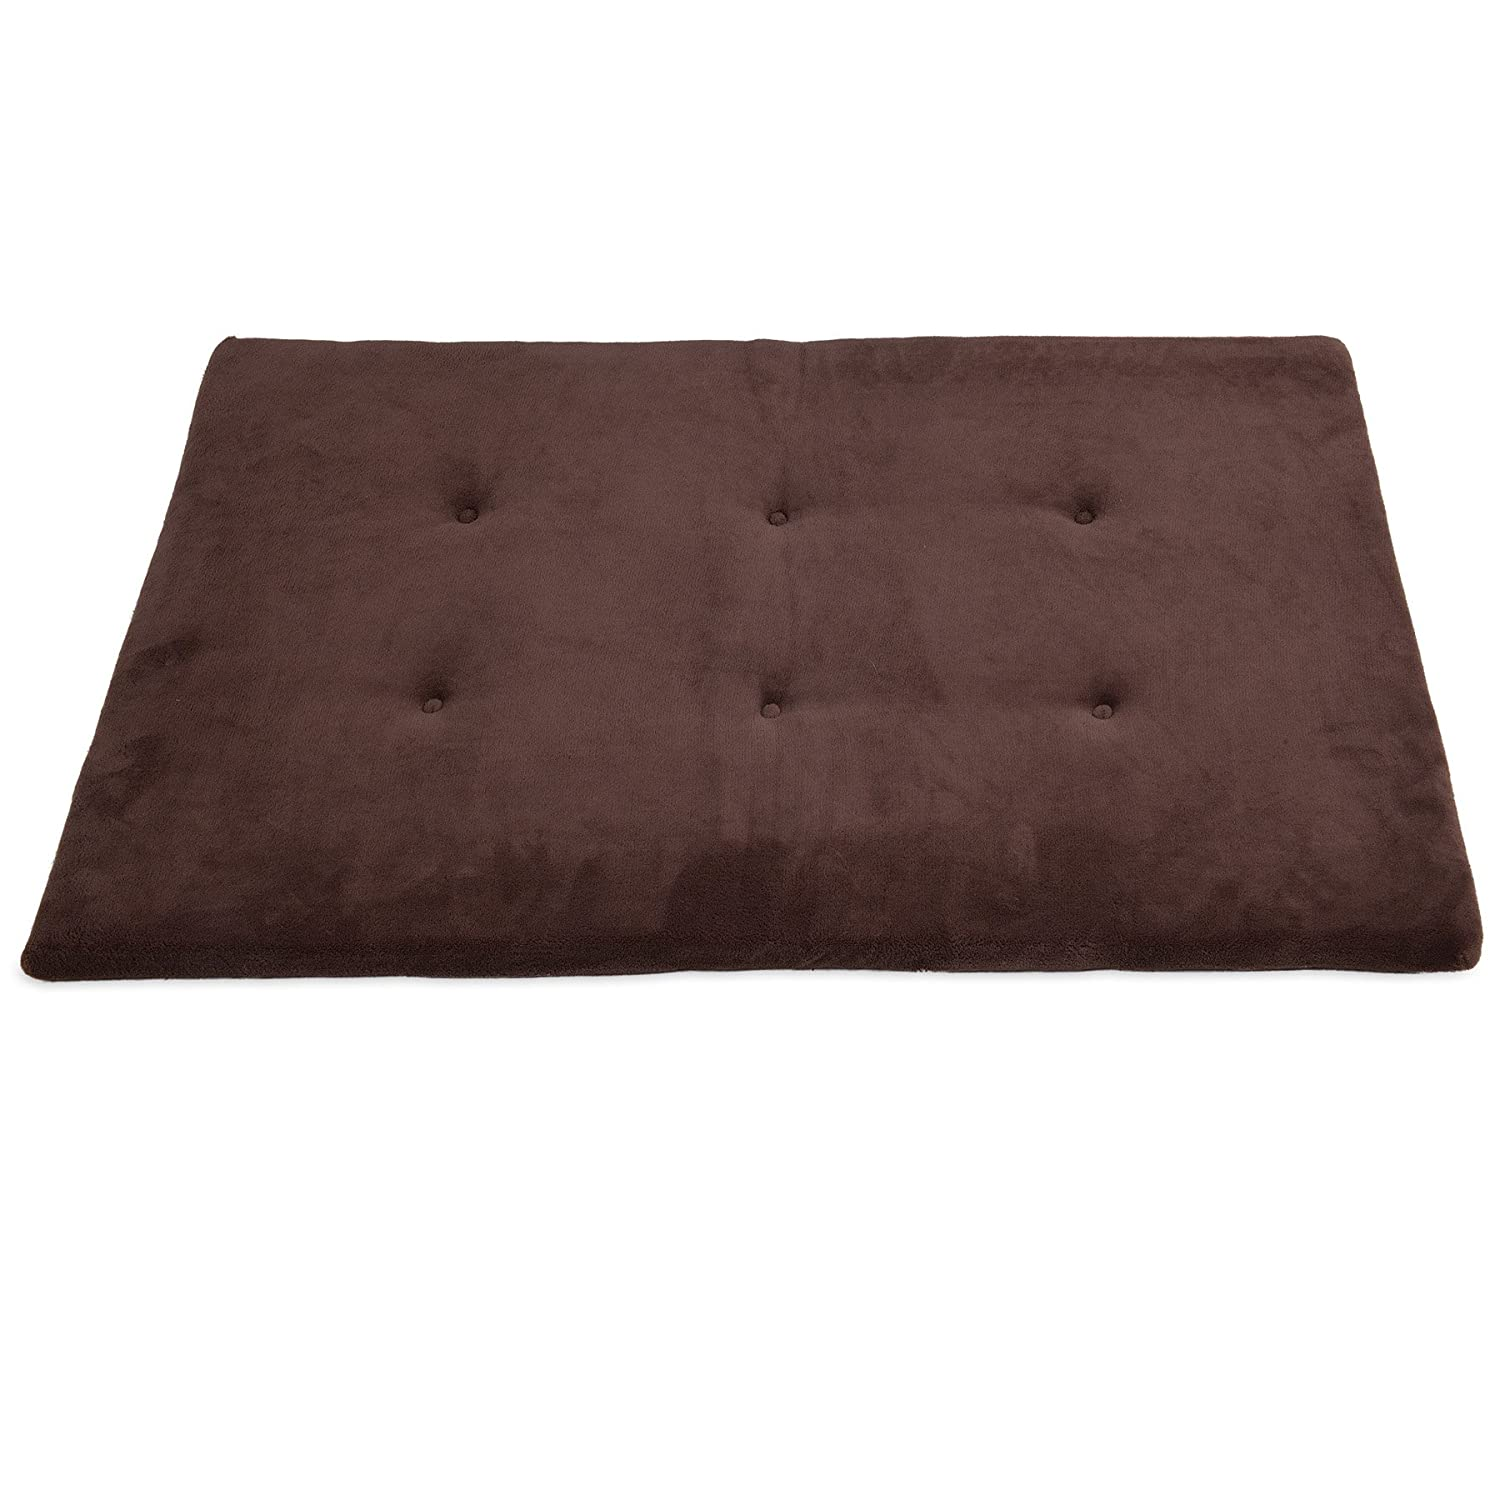 Brown Fits Most 42 Inch Cratesup to 90lbsPrecision 252775446FD 47X28Inch Snoozzy Mat Cargo Kennel, Tan Baby Terry